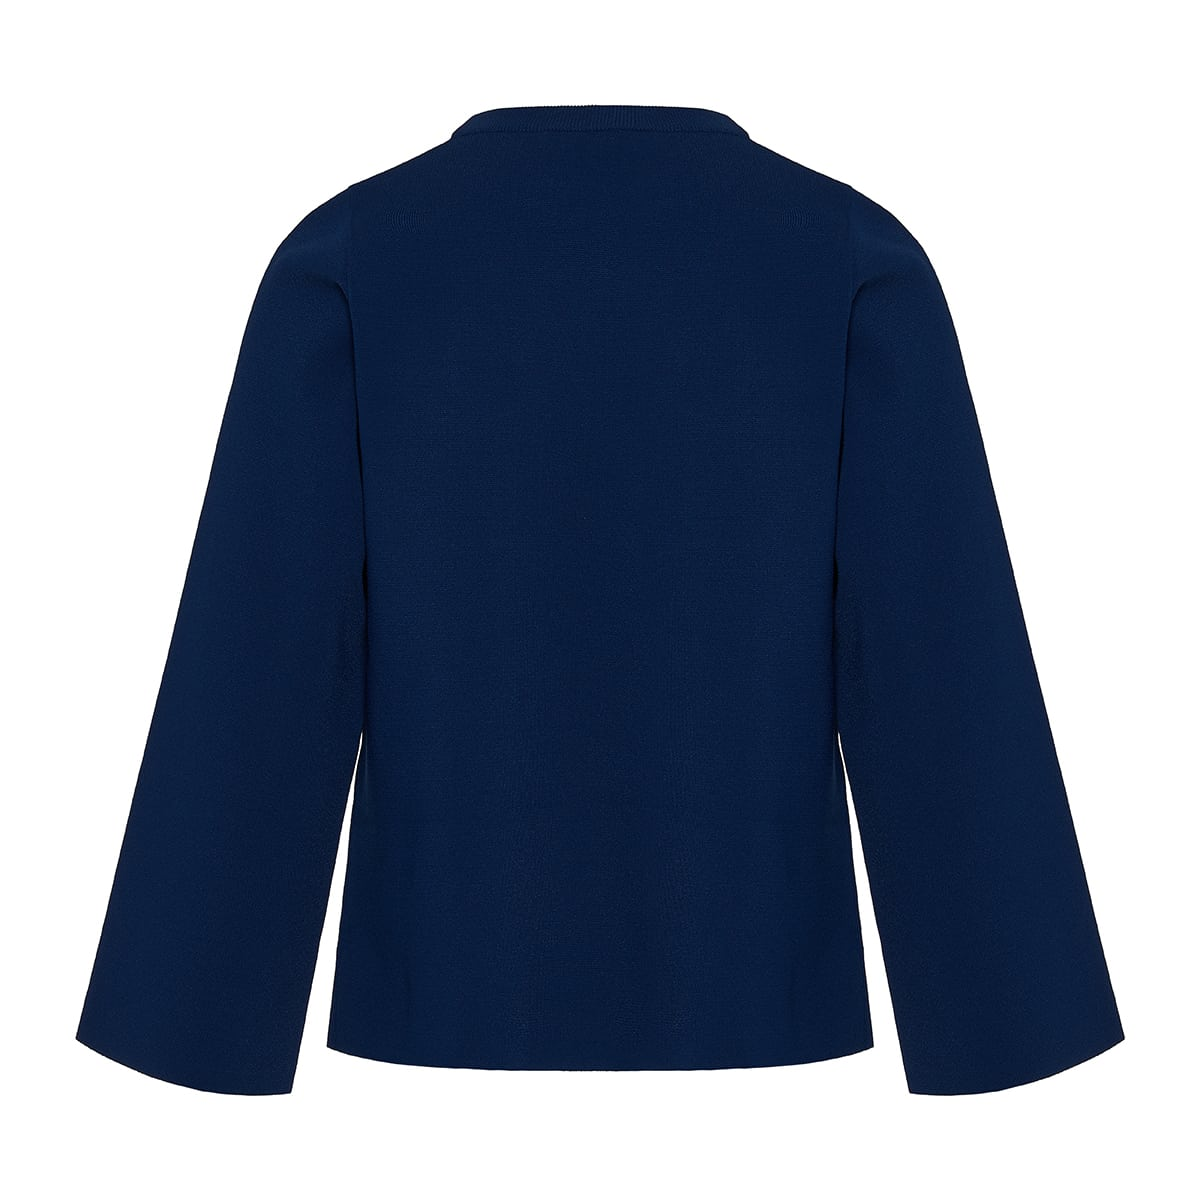 Cutout knitted blouse